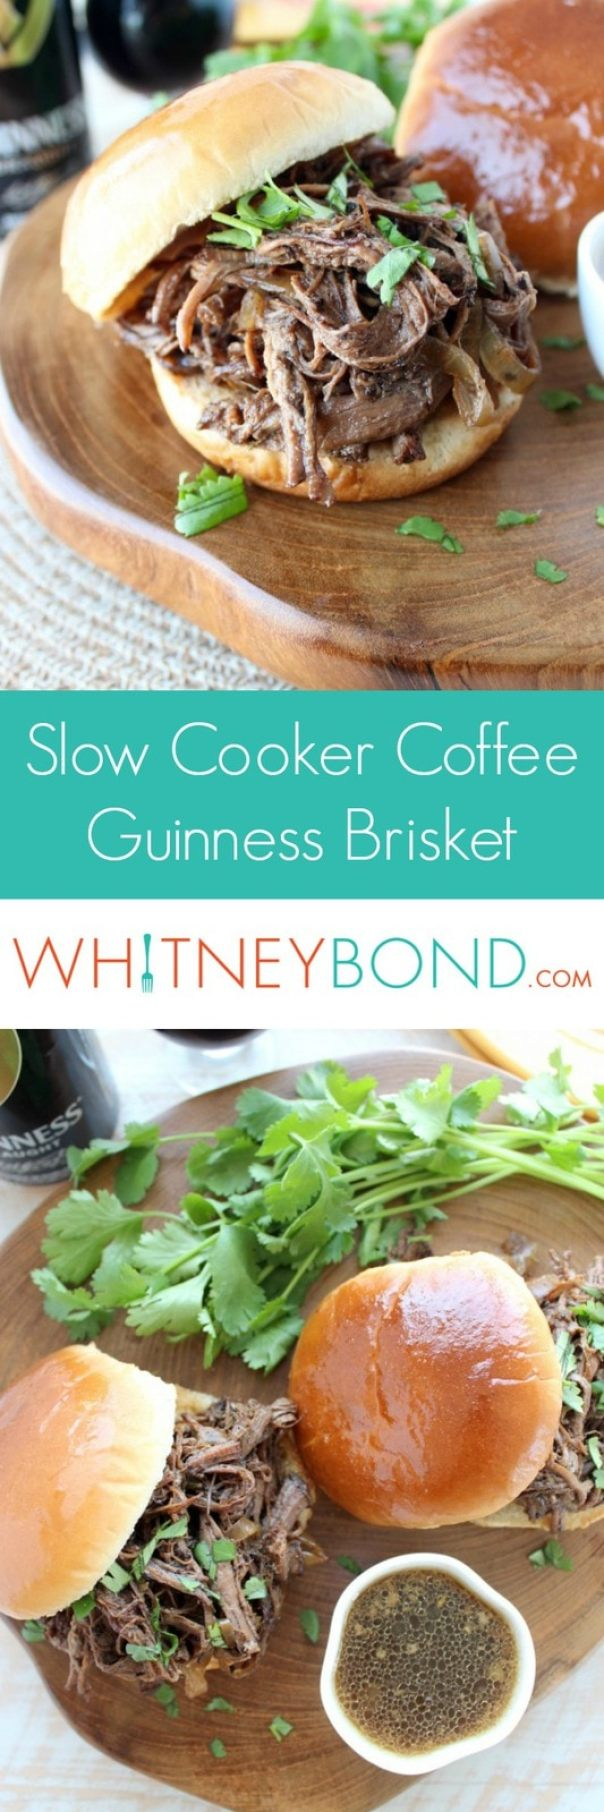 Slow Cooker Coffee Guinness Brisket Sandwich